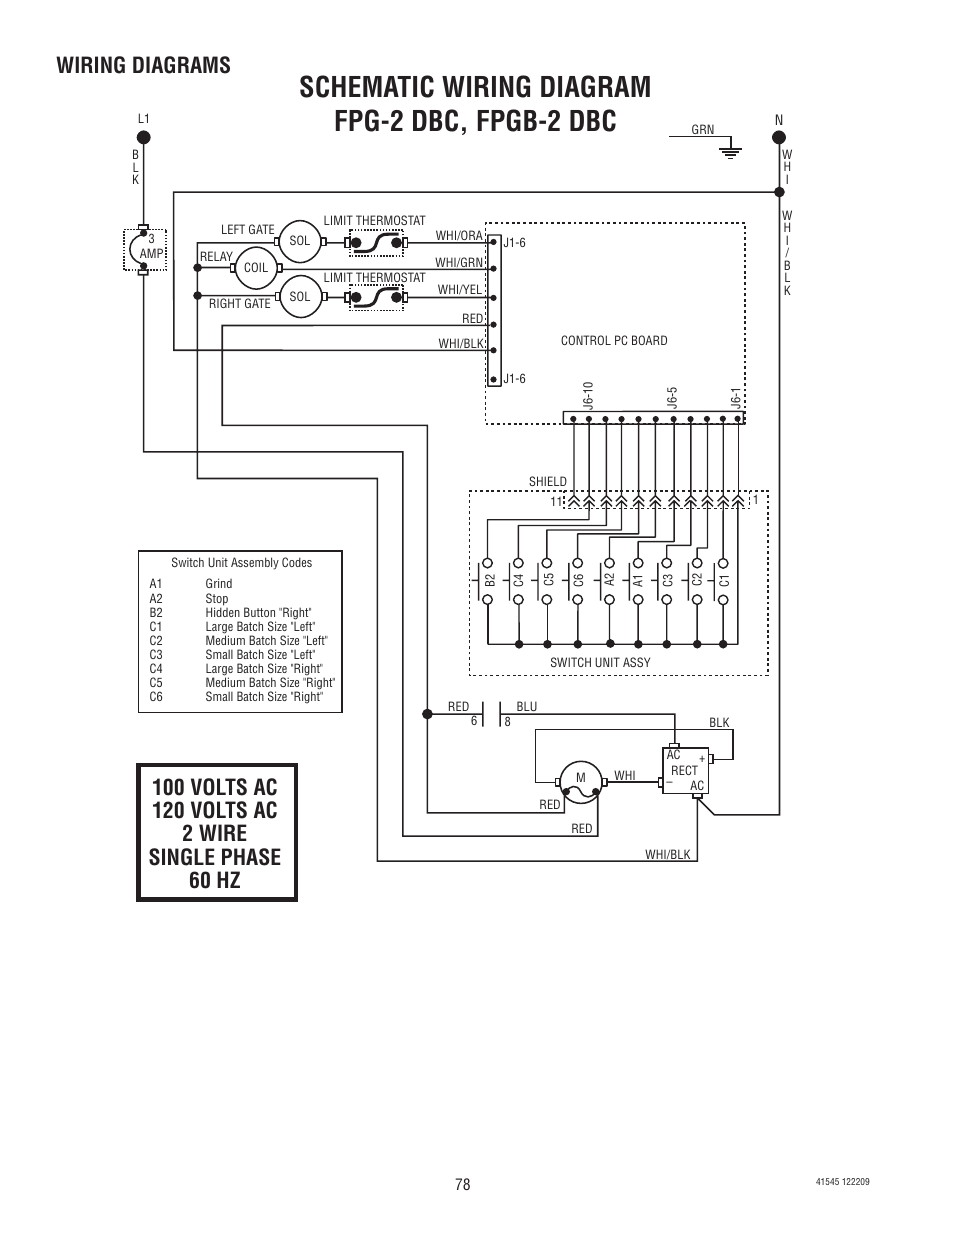 bunn g9 2t dbc page78 schematic wiring diagram fpg 2 dbc, fpgb 2 dbc, wiring diagrams g9 wiring diagram at edmiracle.co